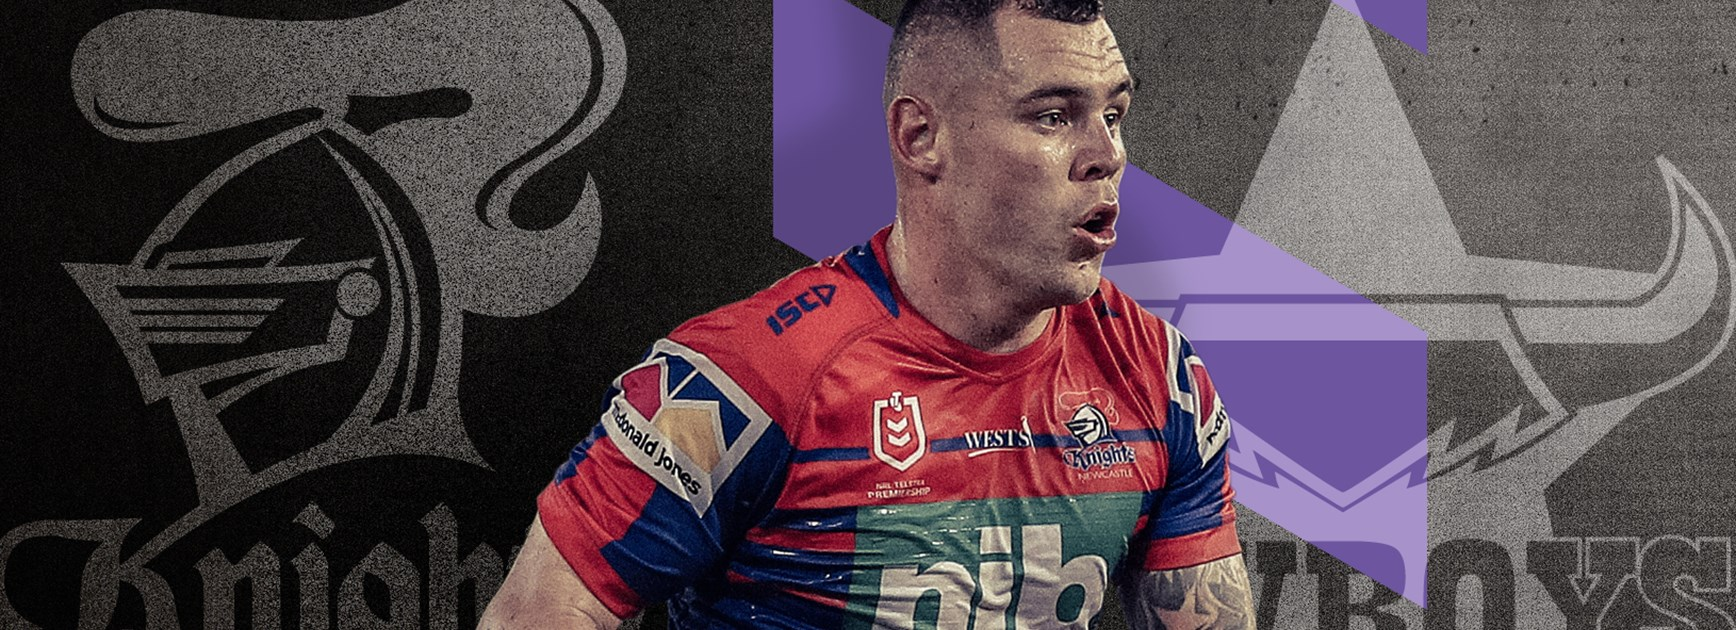 Knights v Cowboys Round 22 NRL team